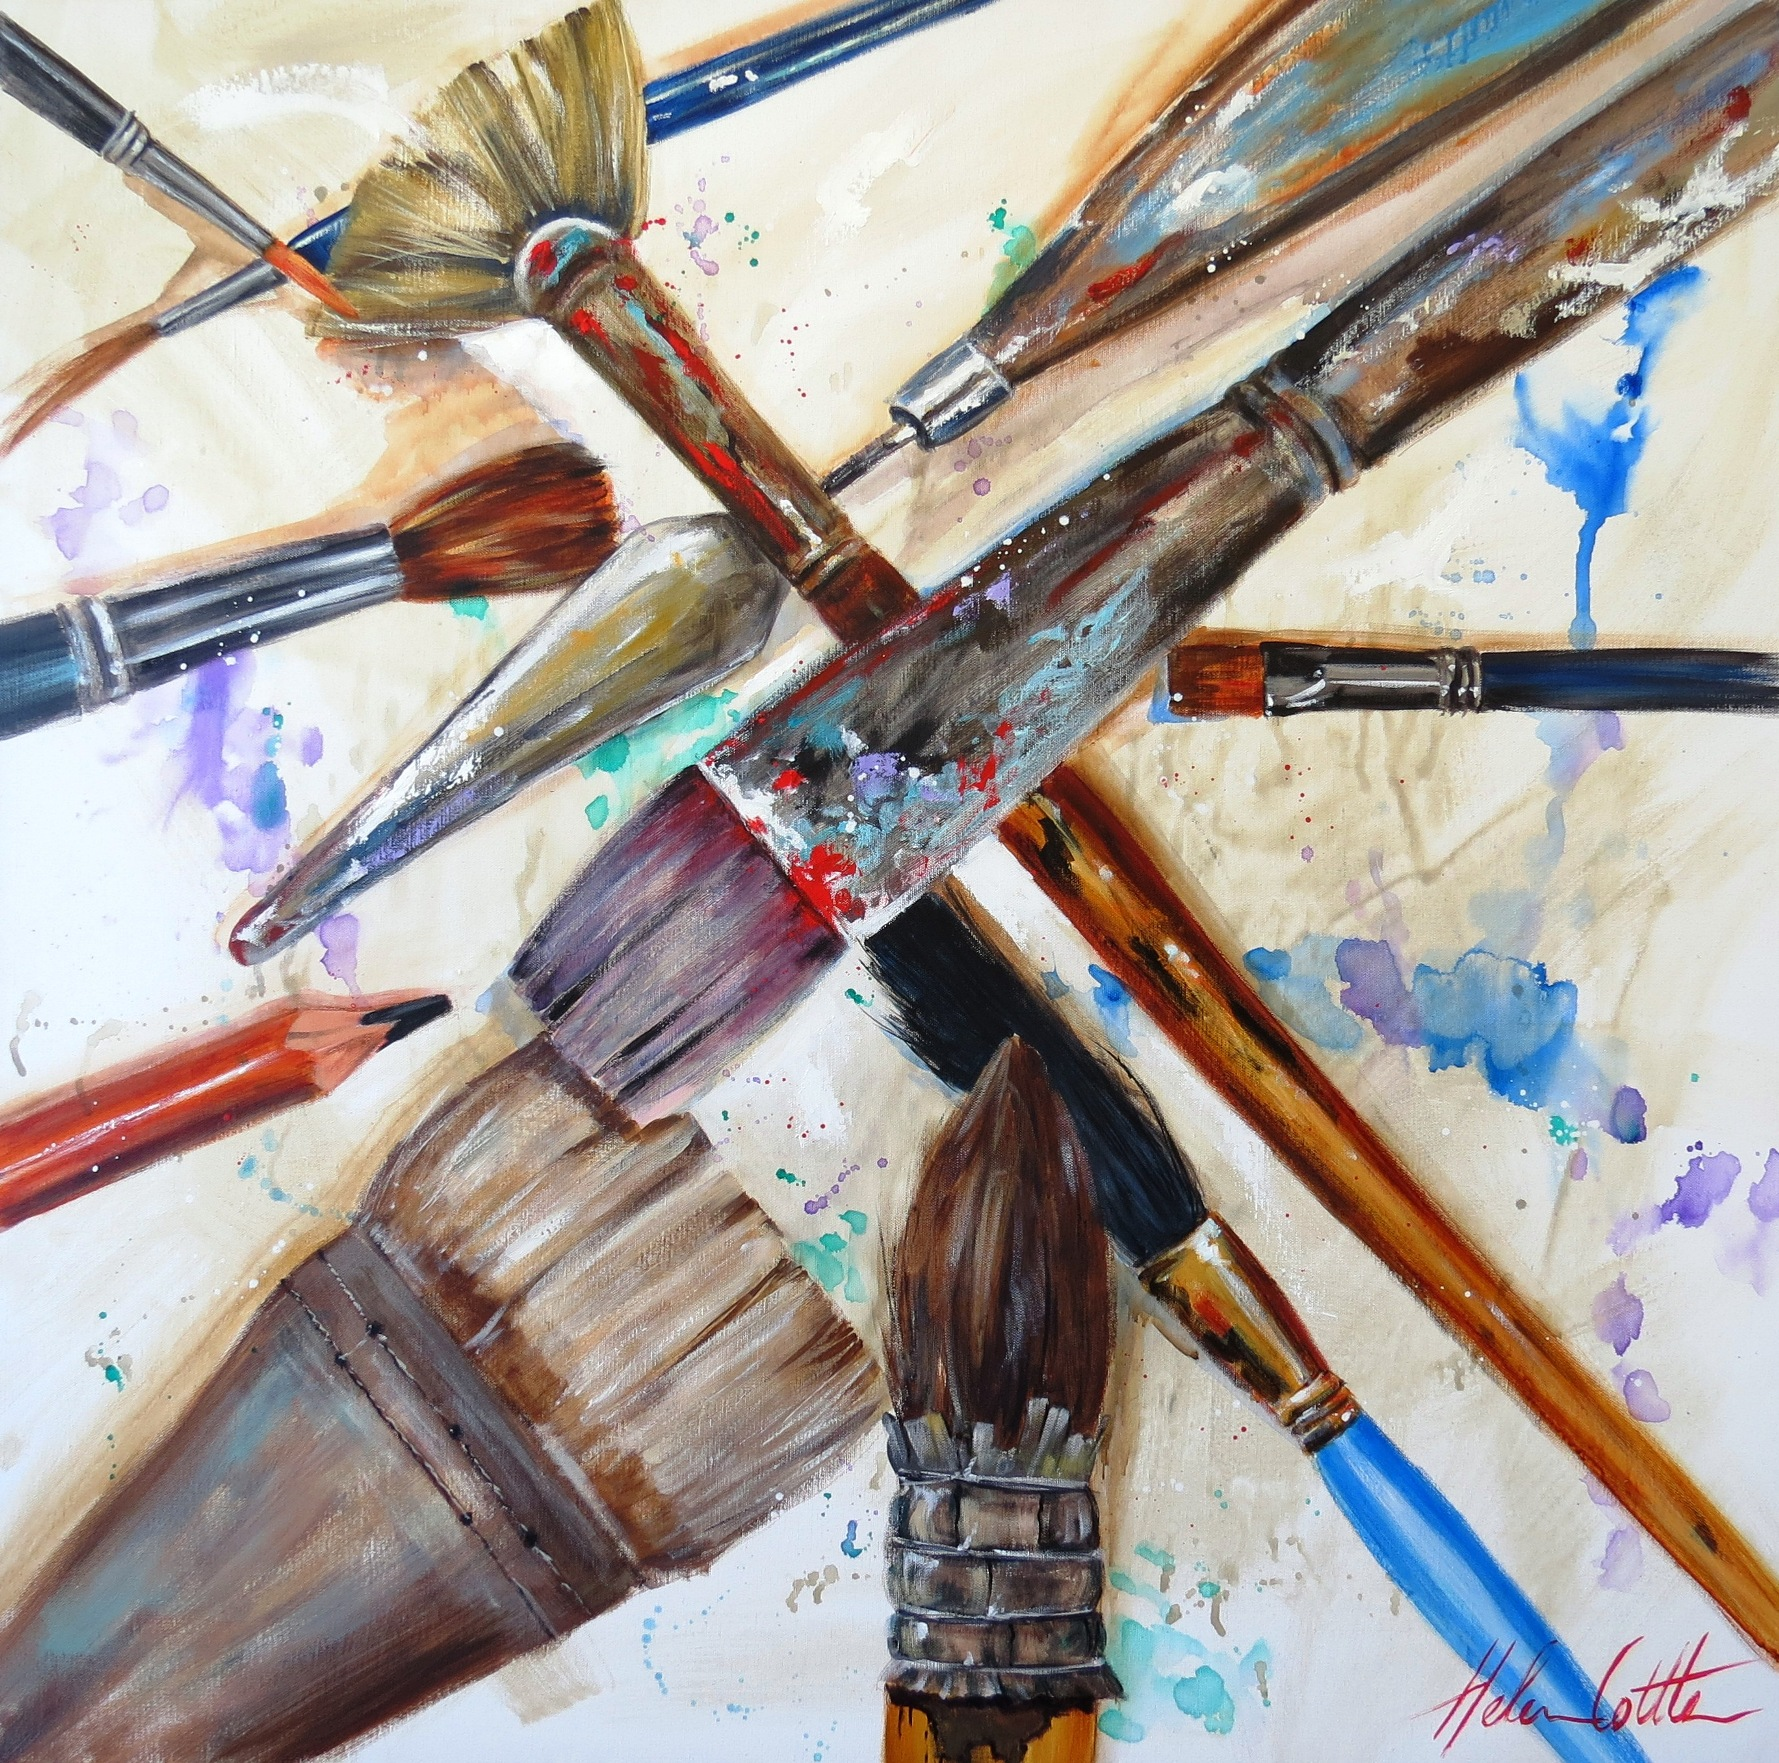 TOOLS OF THE TRADE  ACRYLIC ON CANVAS 90X90CM BY HELEN COTTLE lres.jpg